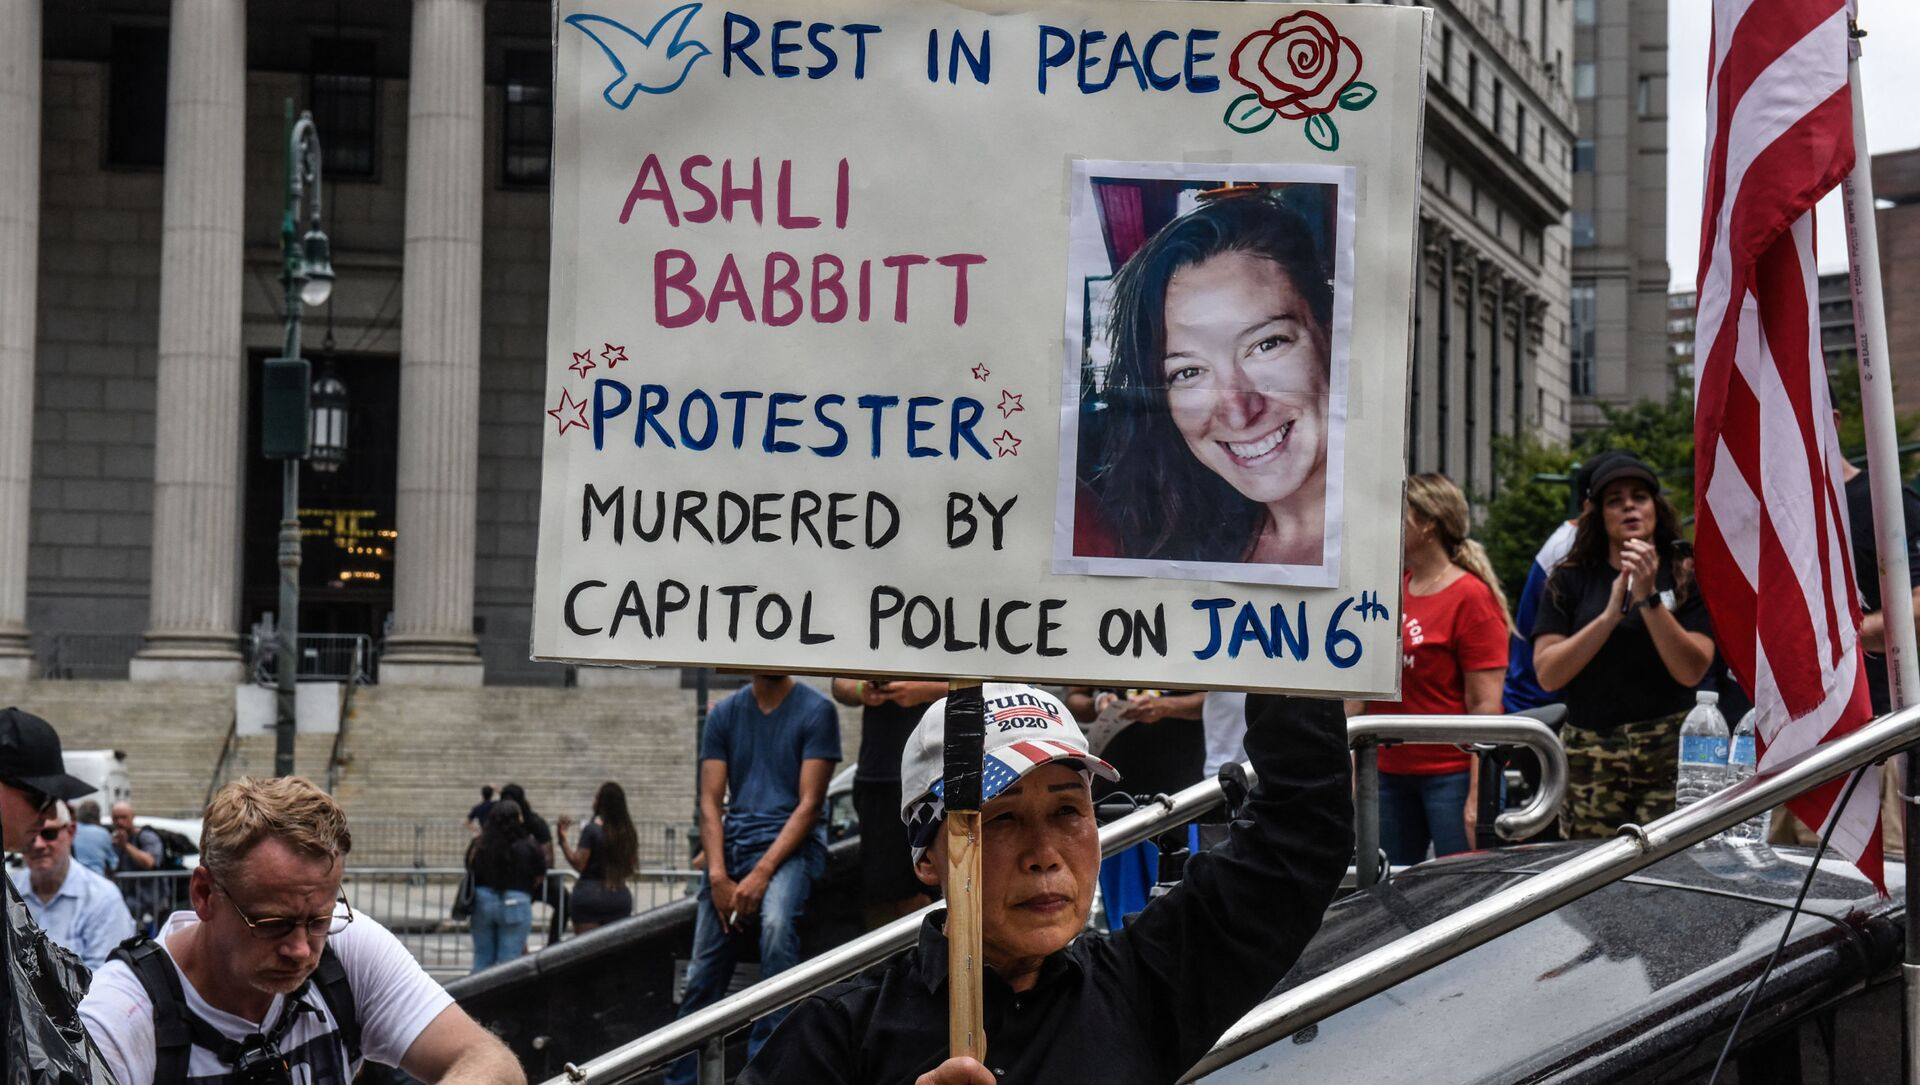 A right wing protester holds a sign about Ashli Babbitt while participating in a political rally on July 25, 2021 in New York City. - Sputnik International, 1920, 23.08.2021